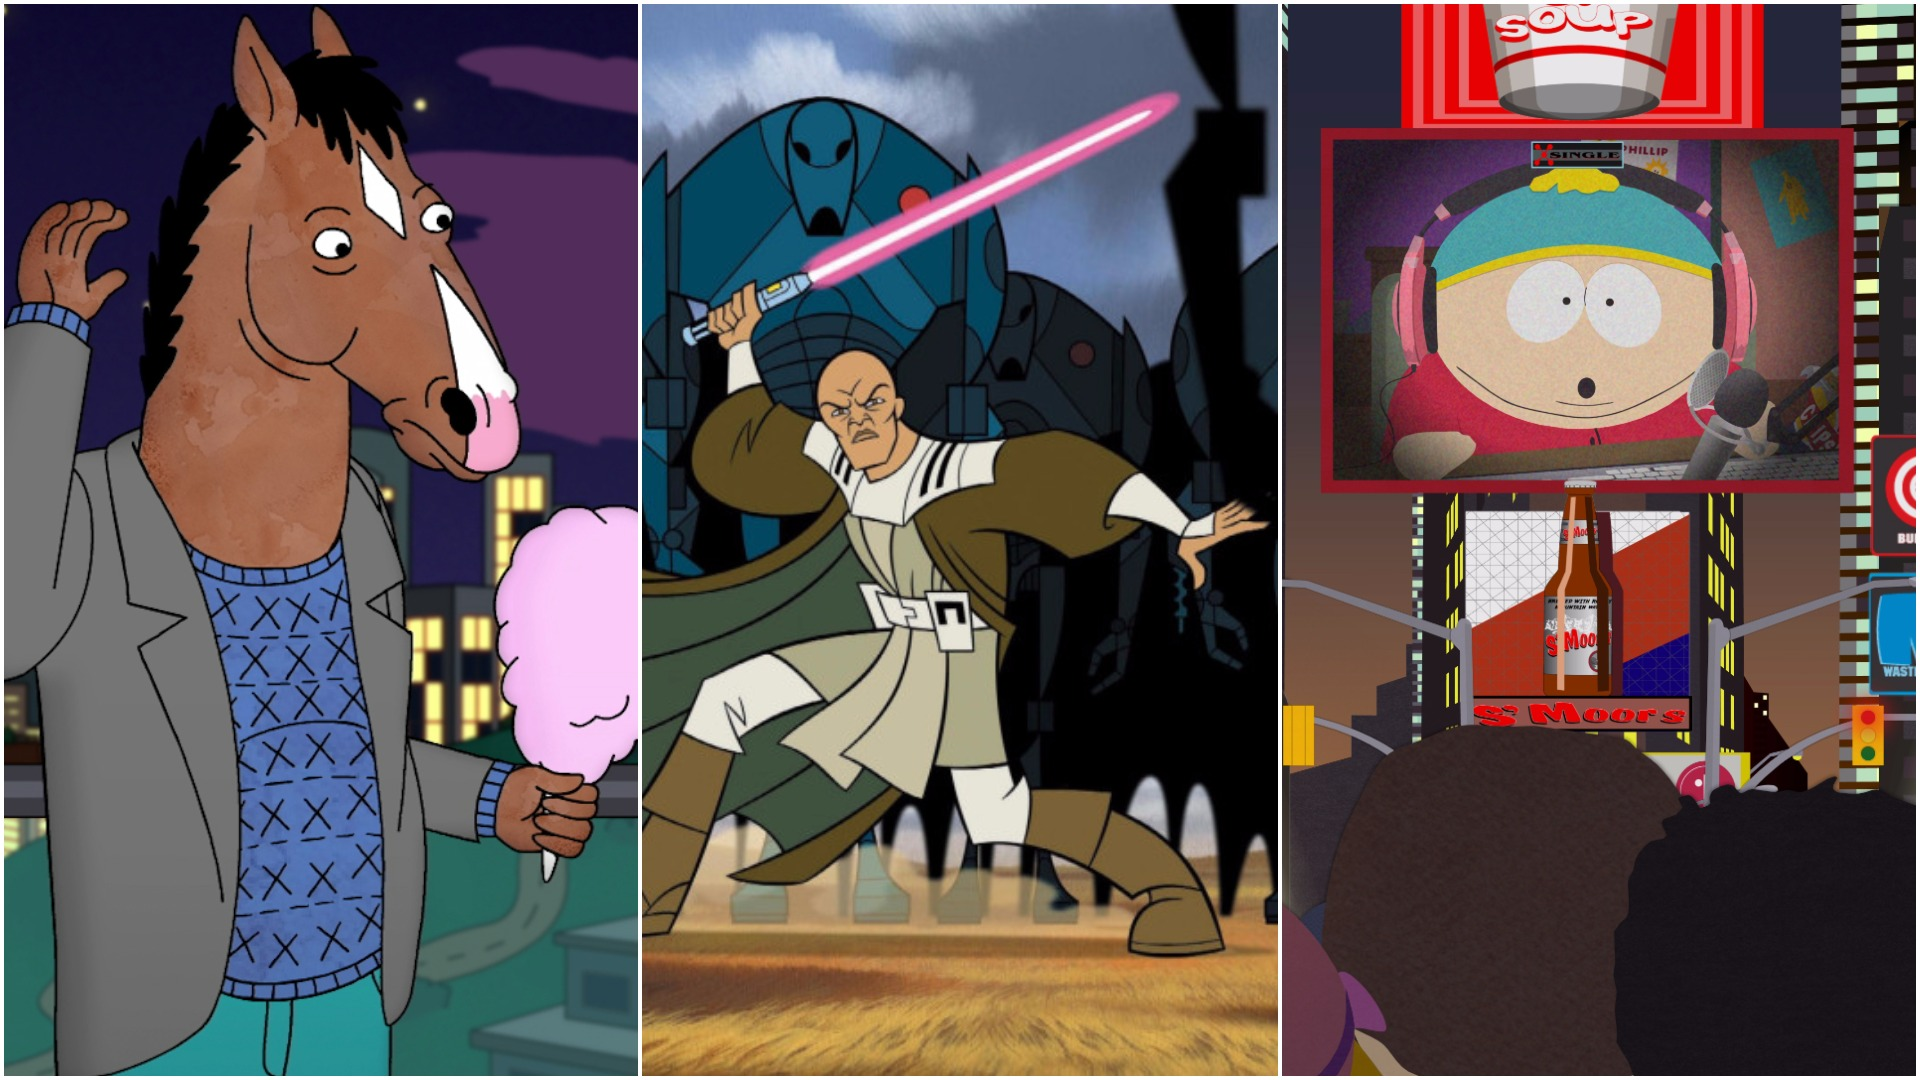 Batman Wallpaper Why Do We Fall The 20 Best Animated Tv Shows Of The 21st Century Ranked